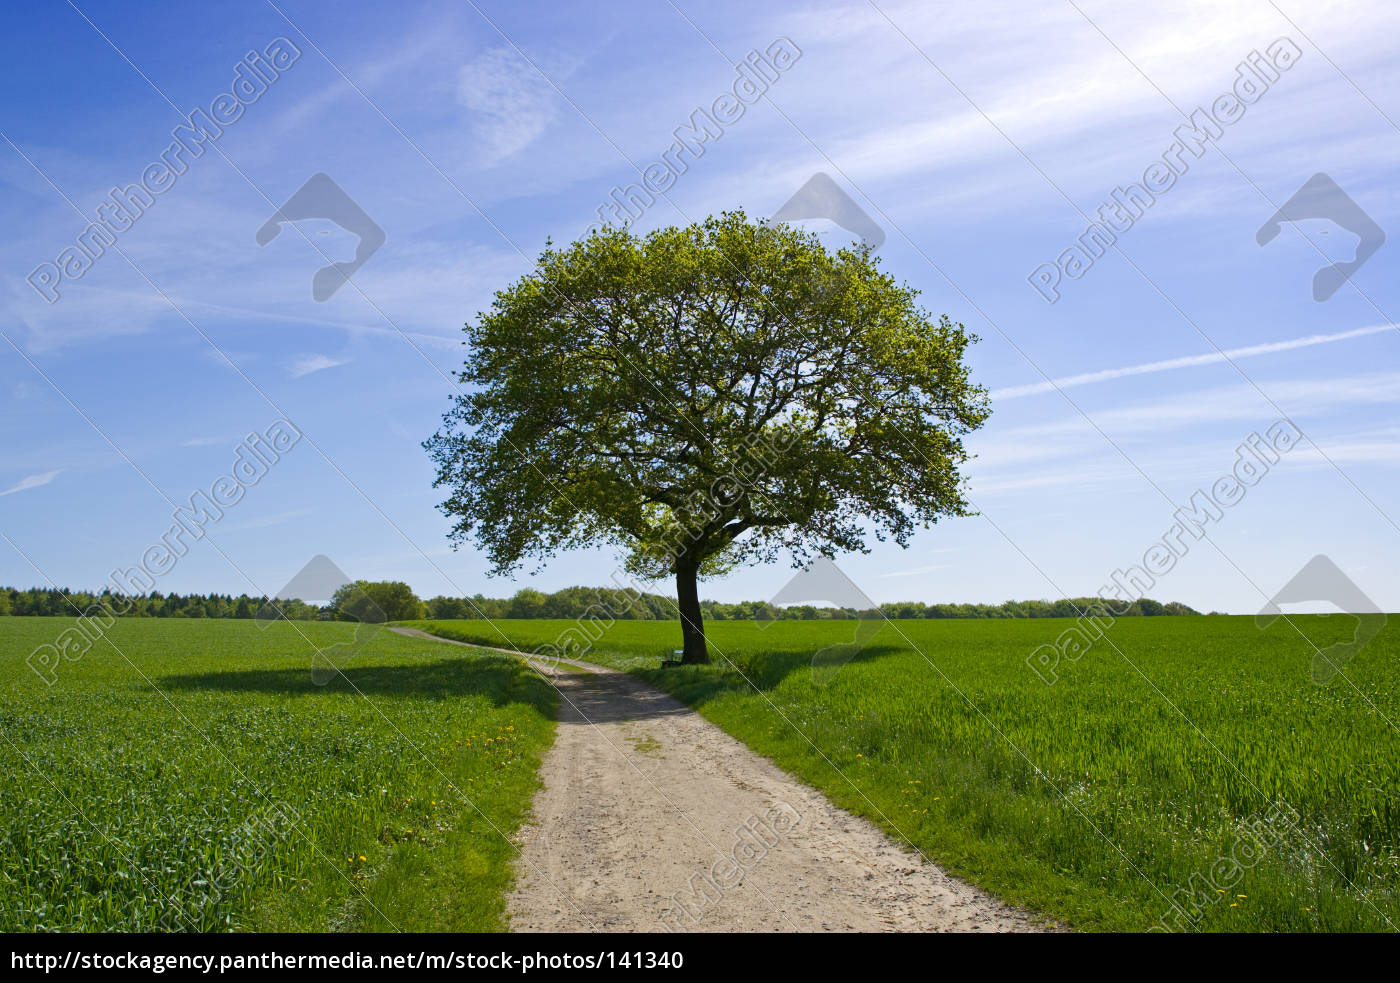 tree, on, the, way - 141340